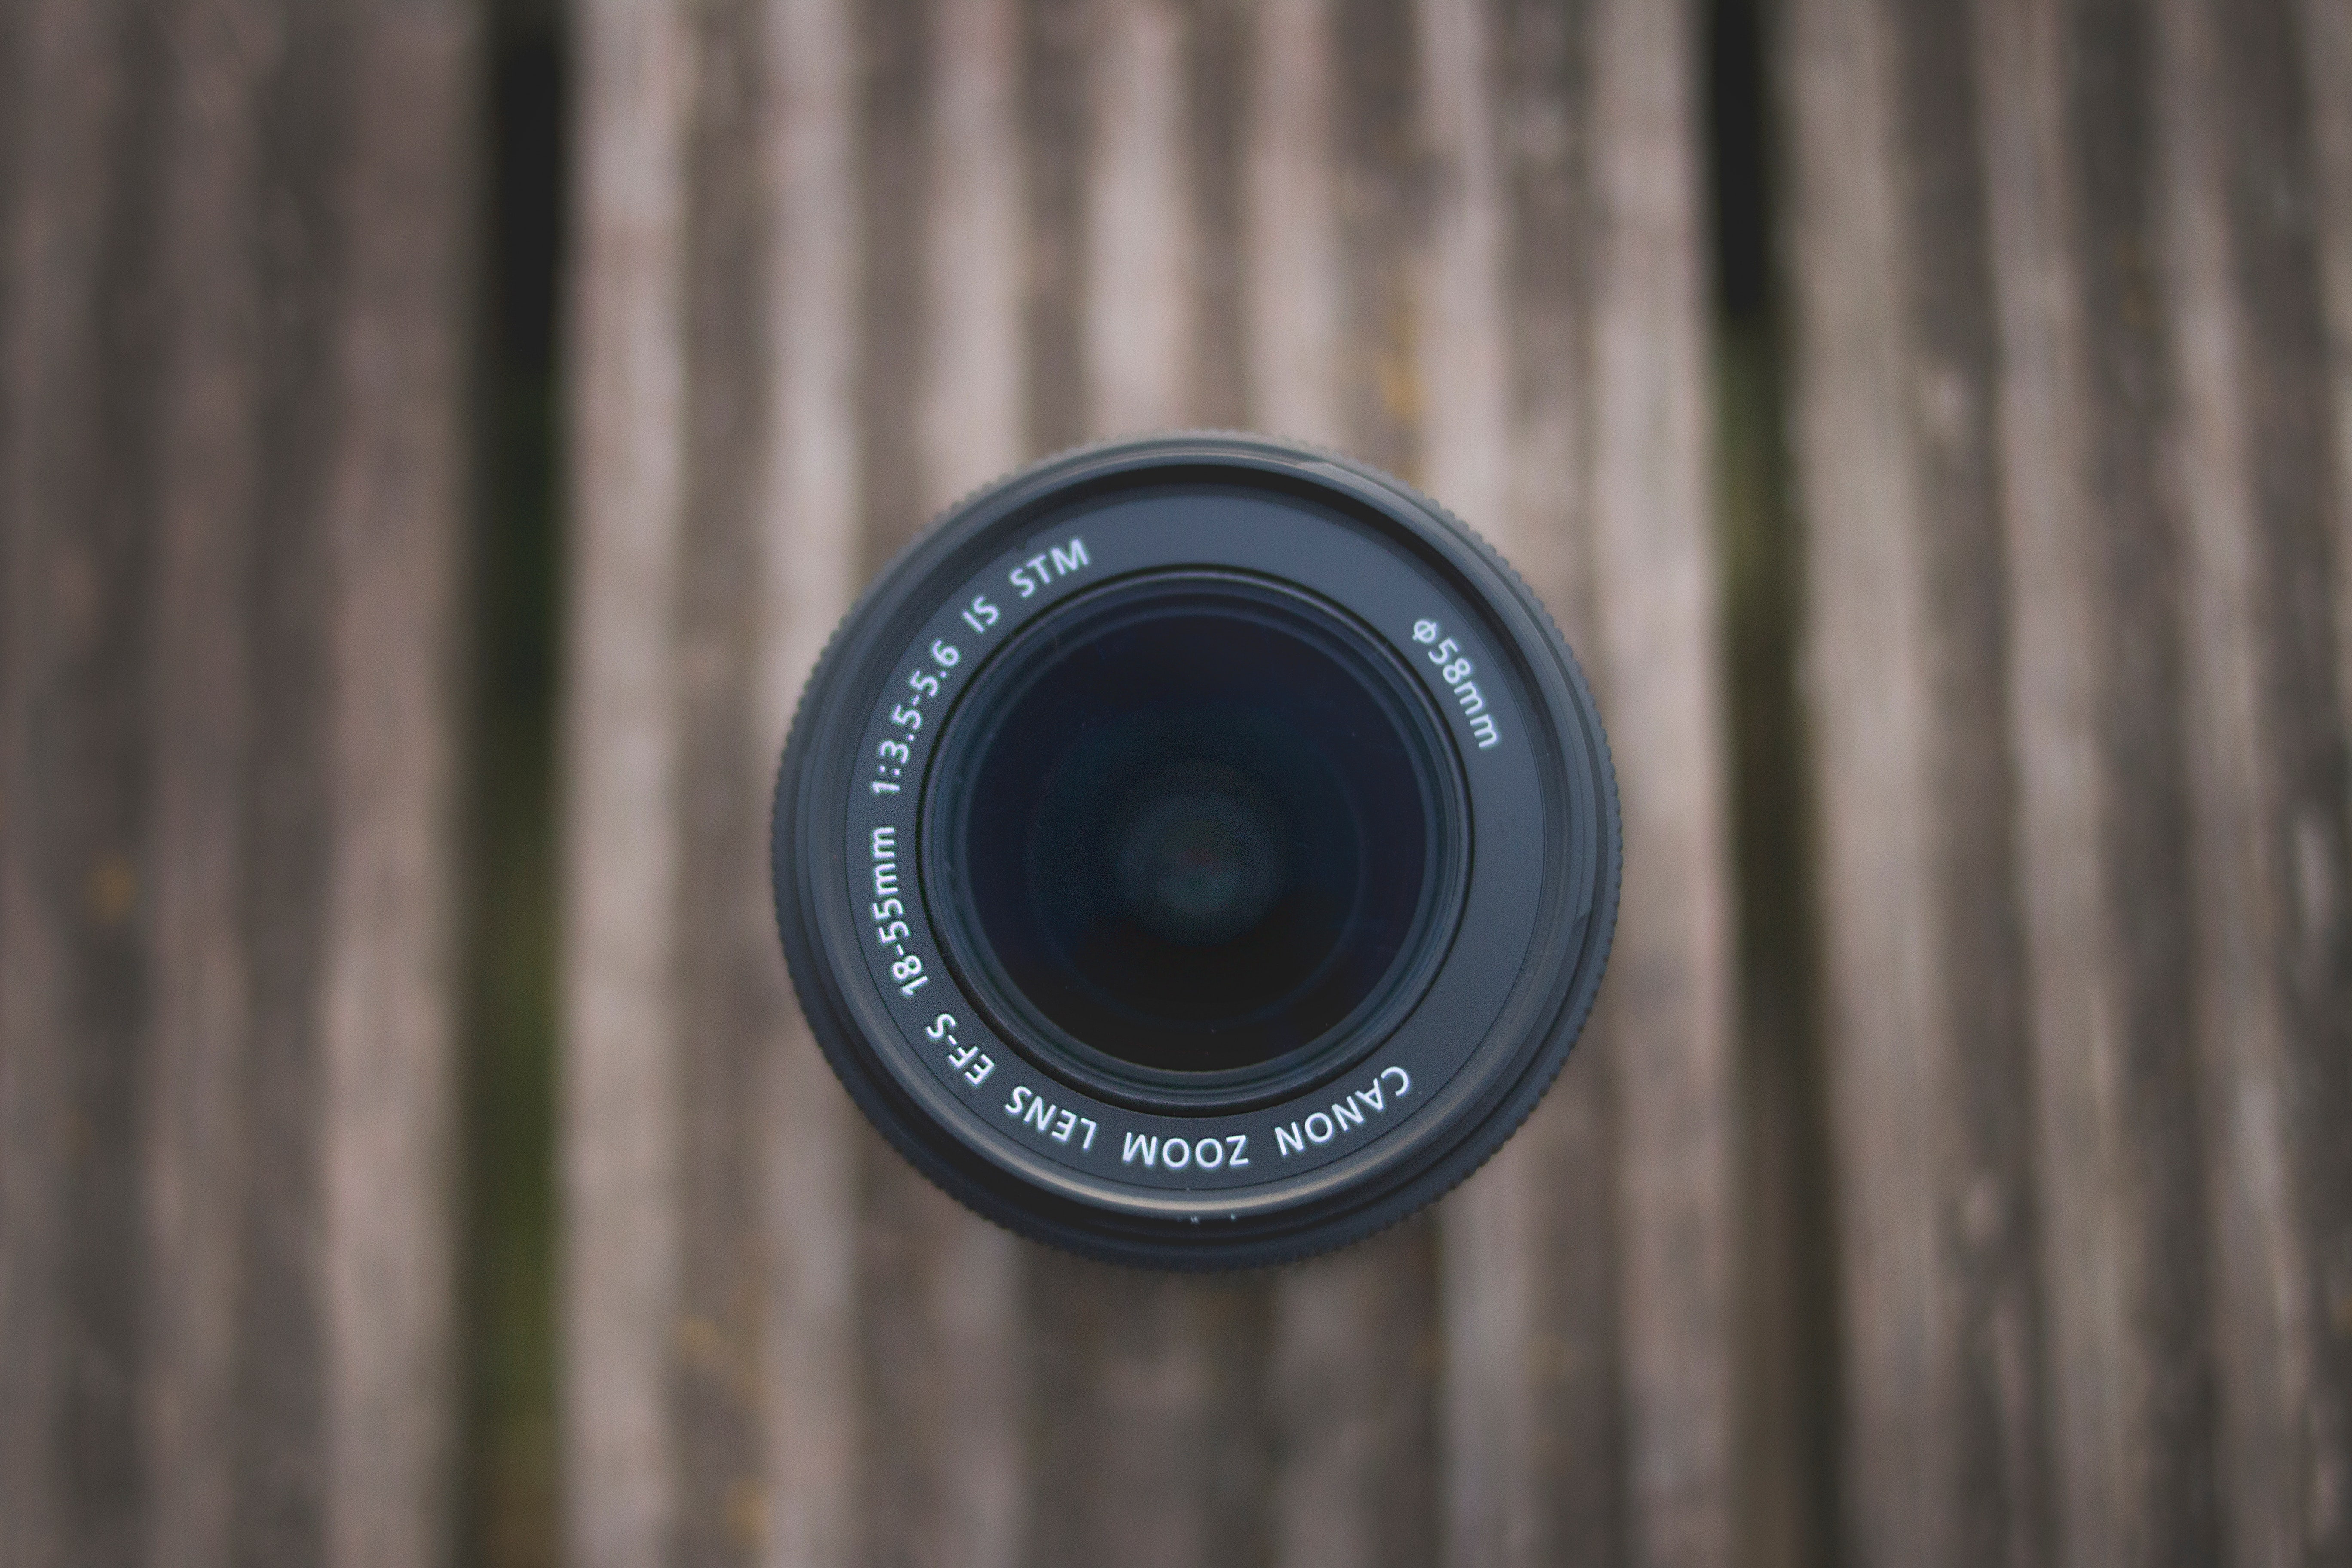 Free Photo Top View Photography Of Canon Dslr Camera Lens Blur Canon Close Up Free Download Jooinn